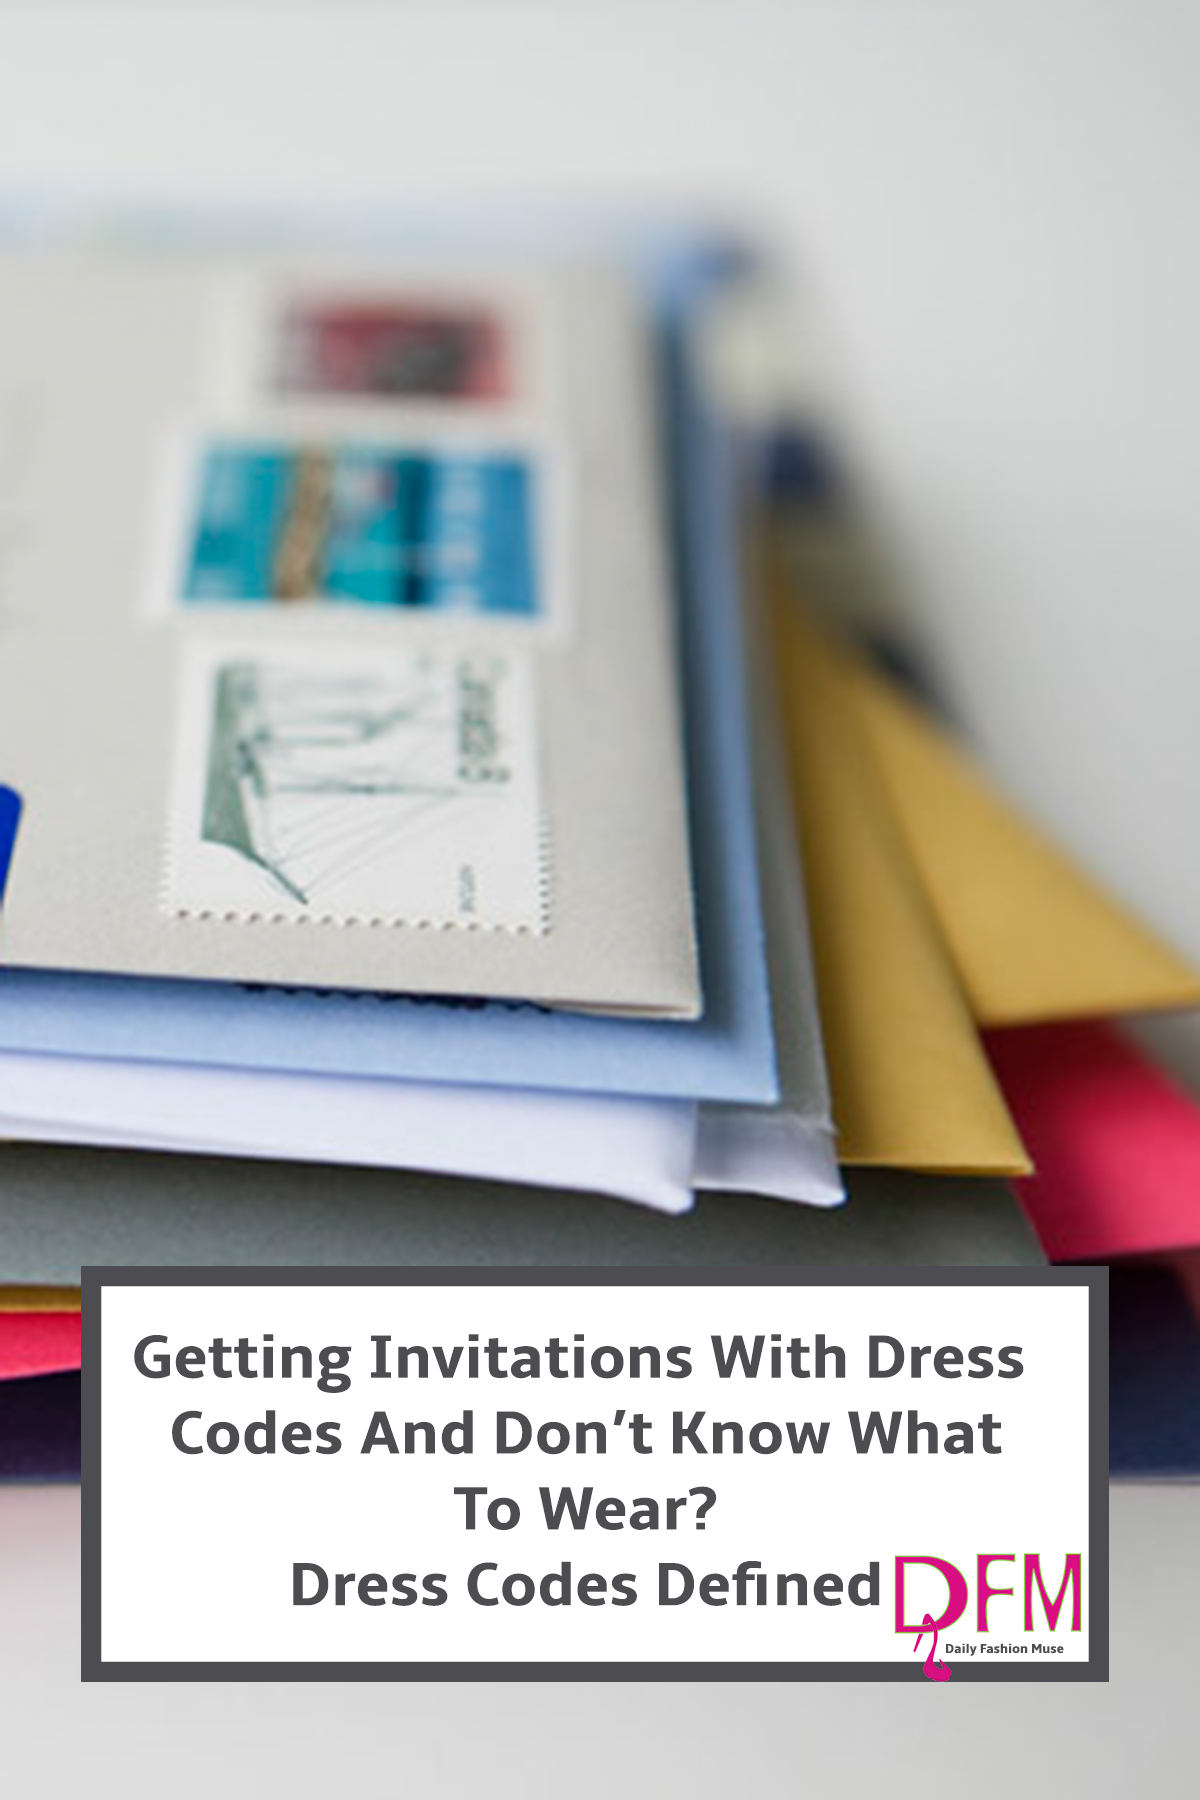 Wondering what all those different dress codes mean on your invitations? We broke it all down. Click through to read.